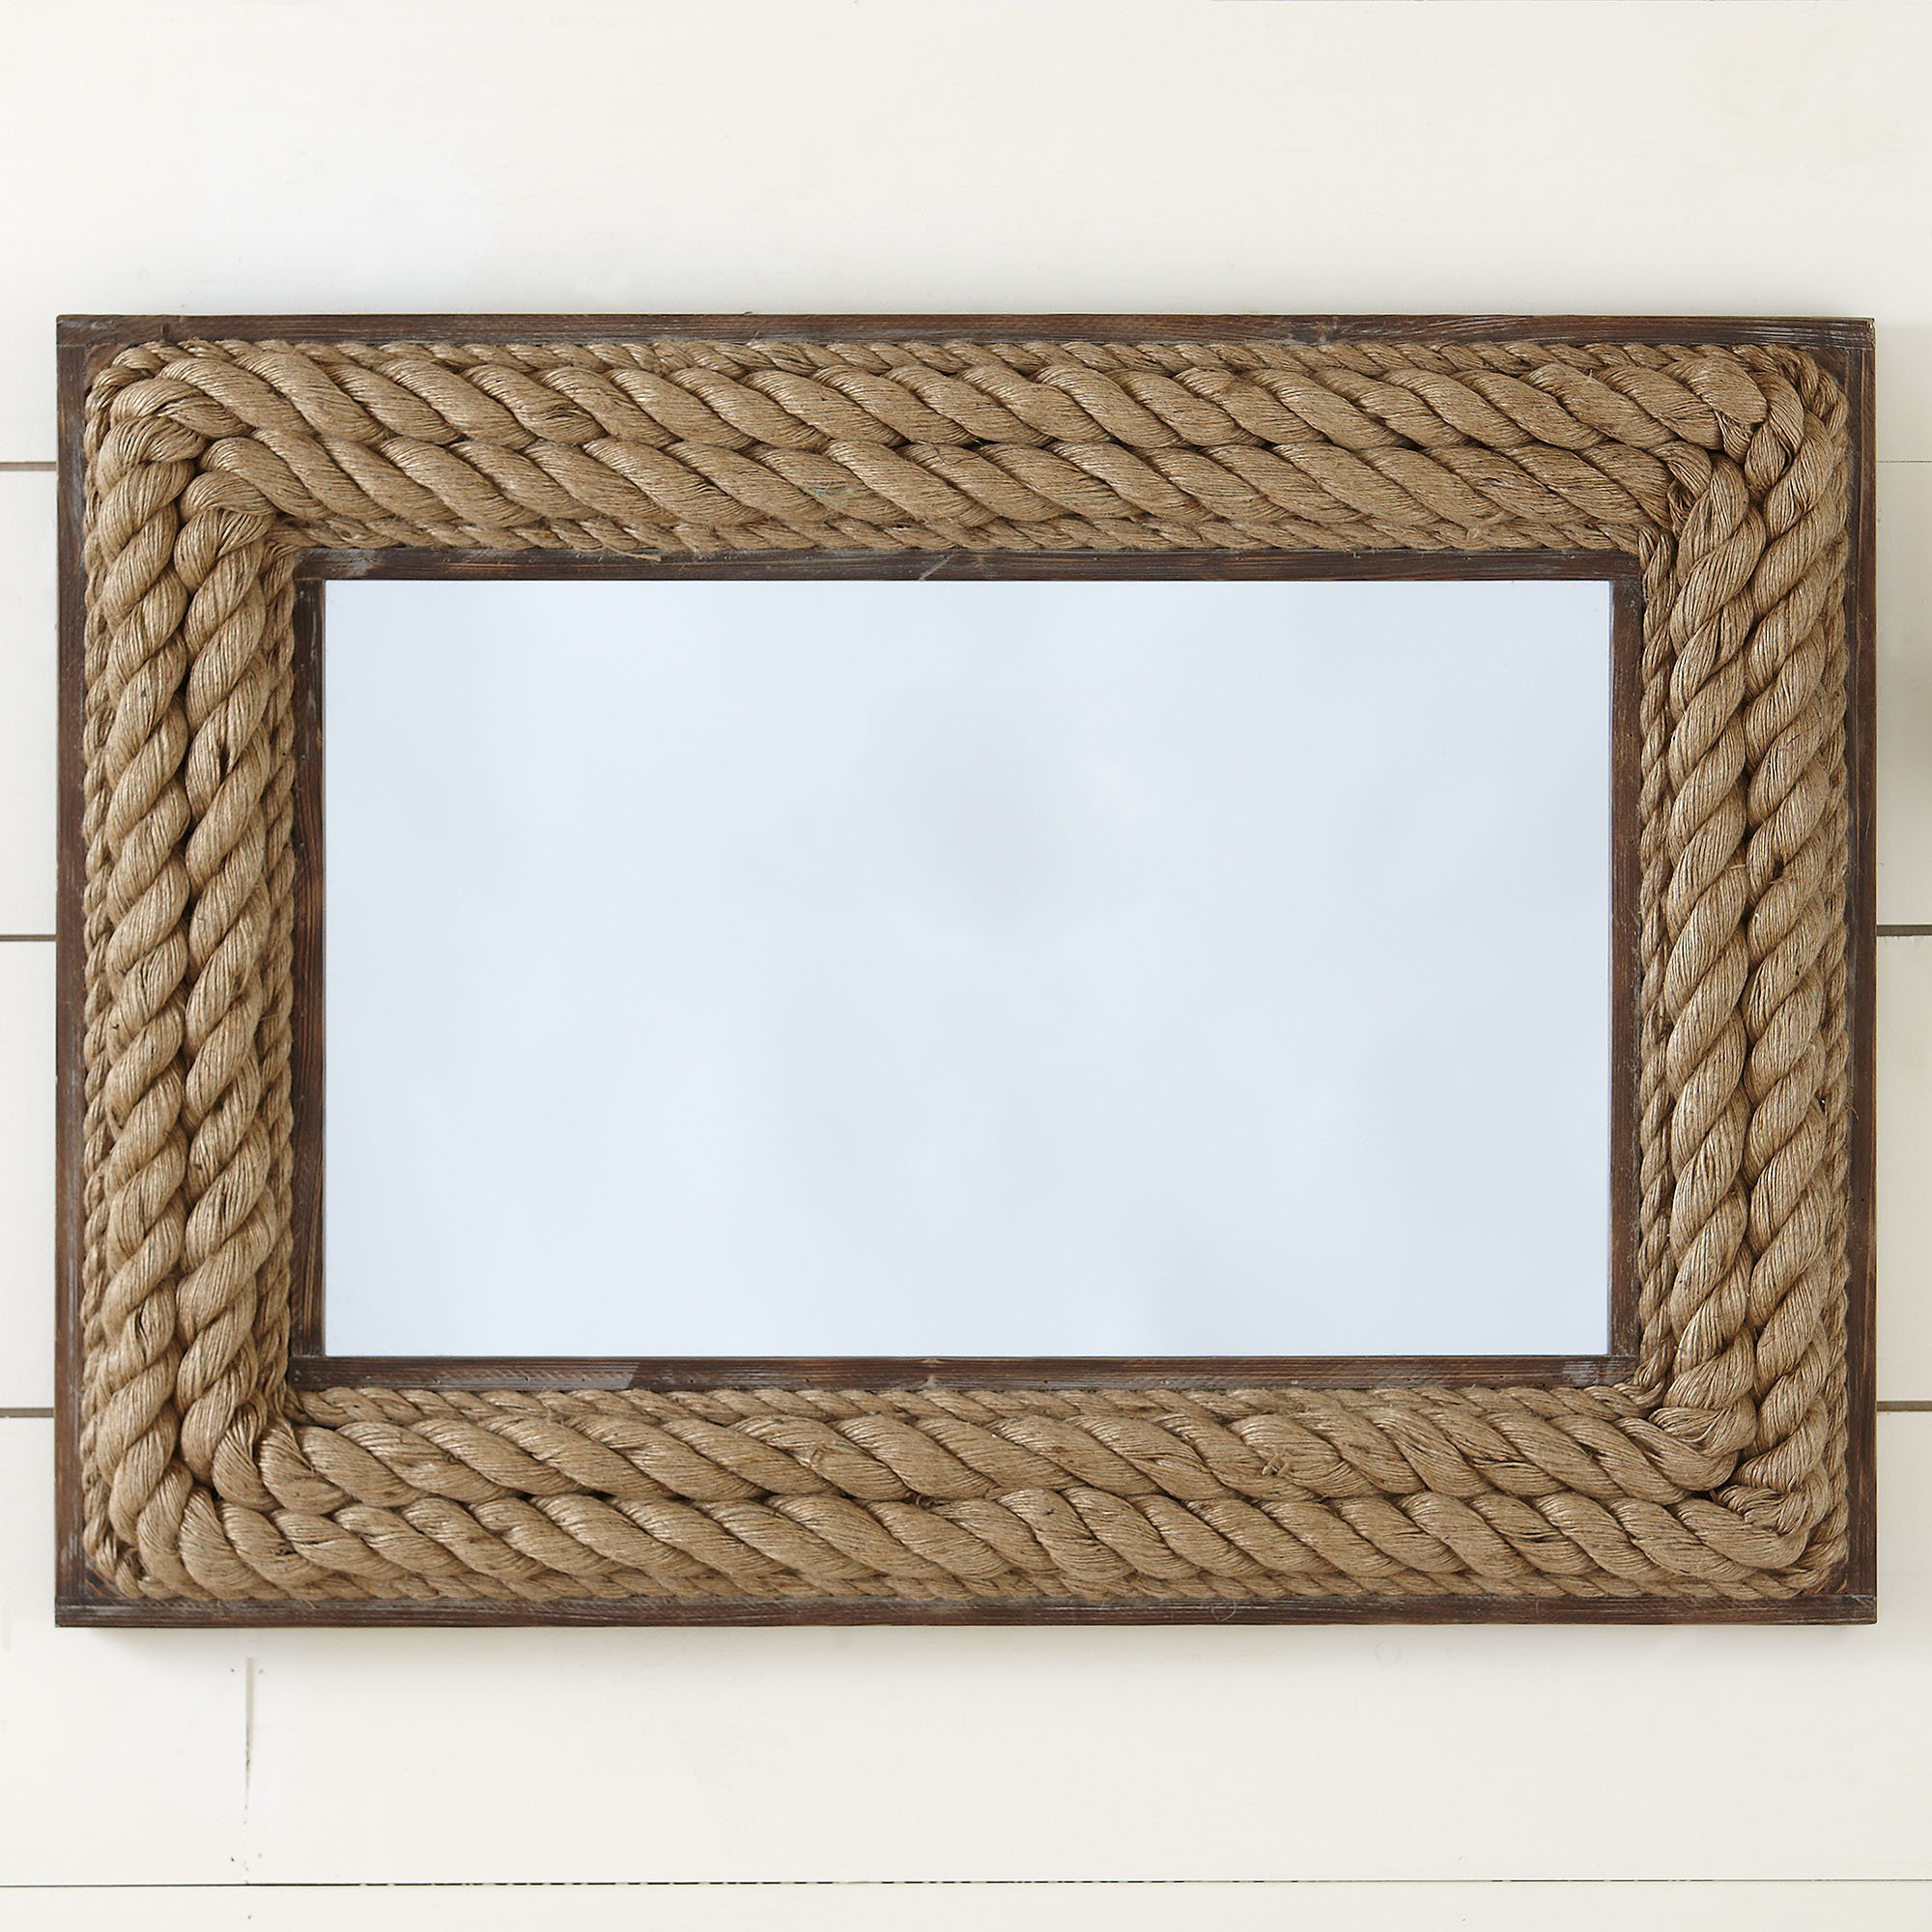 Farmhouse & Rustic Breakwater Bay Wall & Accent Mirrors Inside Mcnary Accent Mirrors (View 10 of 20)